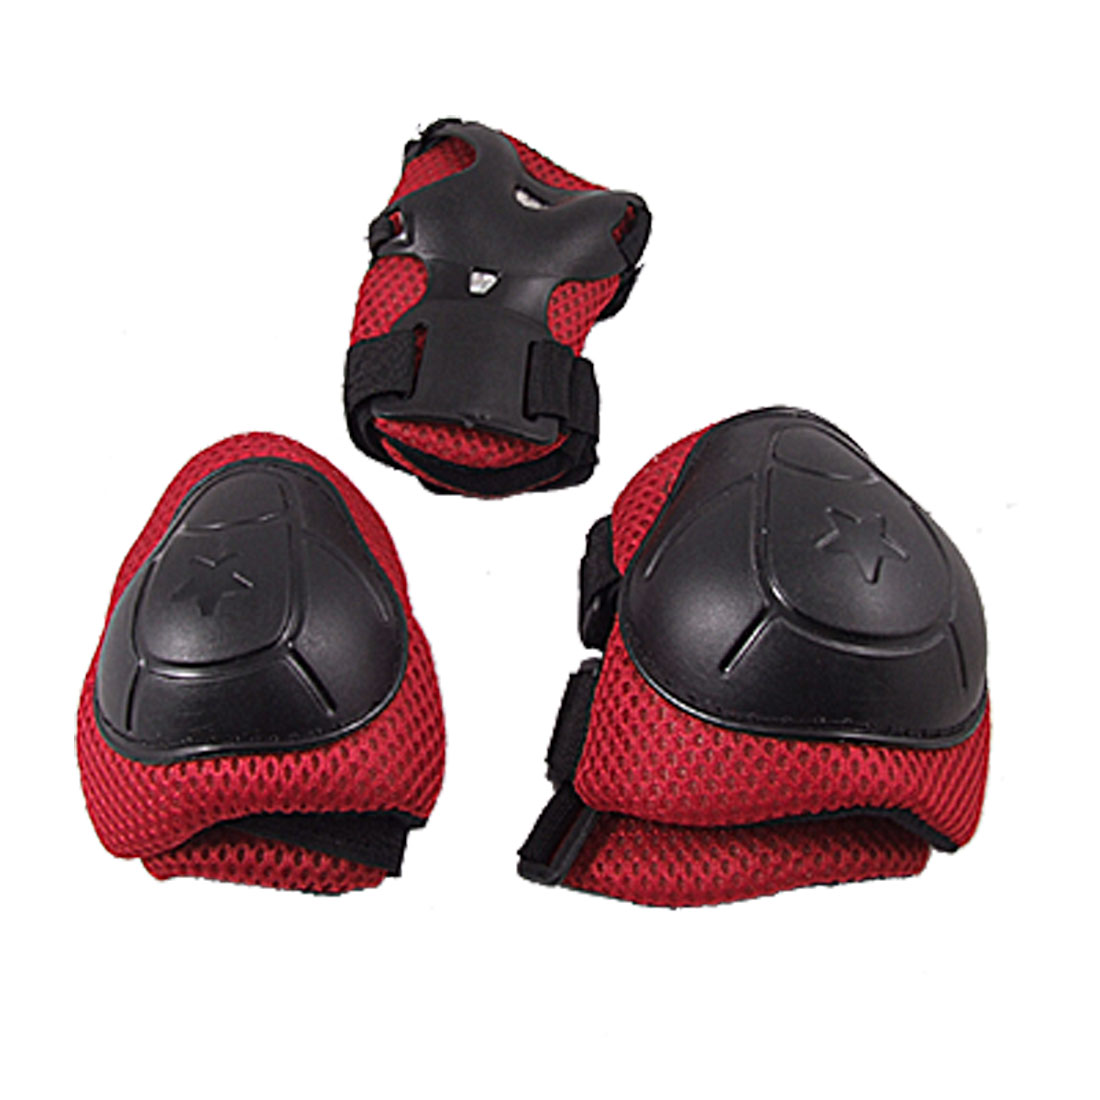 Skating Gear Knee Elbow Wrist Pads Protector Red Black